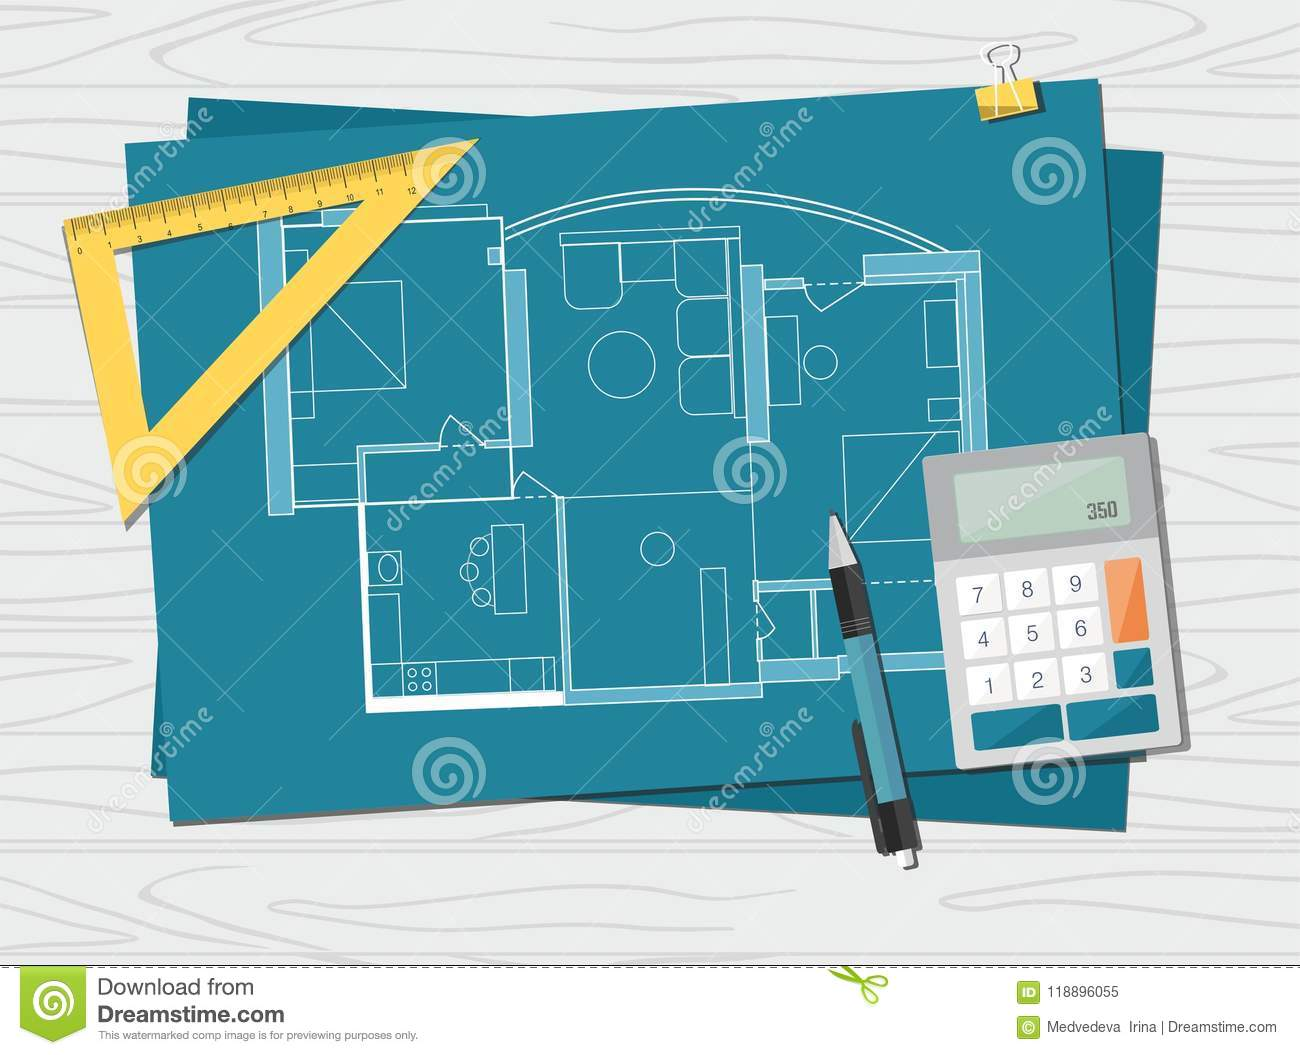 Workplace technical project architect house plan blueprint download workplace technical project architect house plan blueprint construction background stock vector malvernweather Images